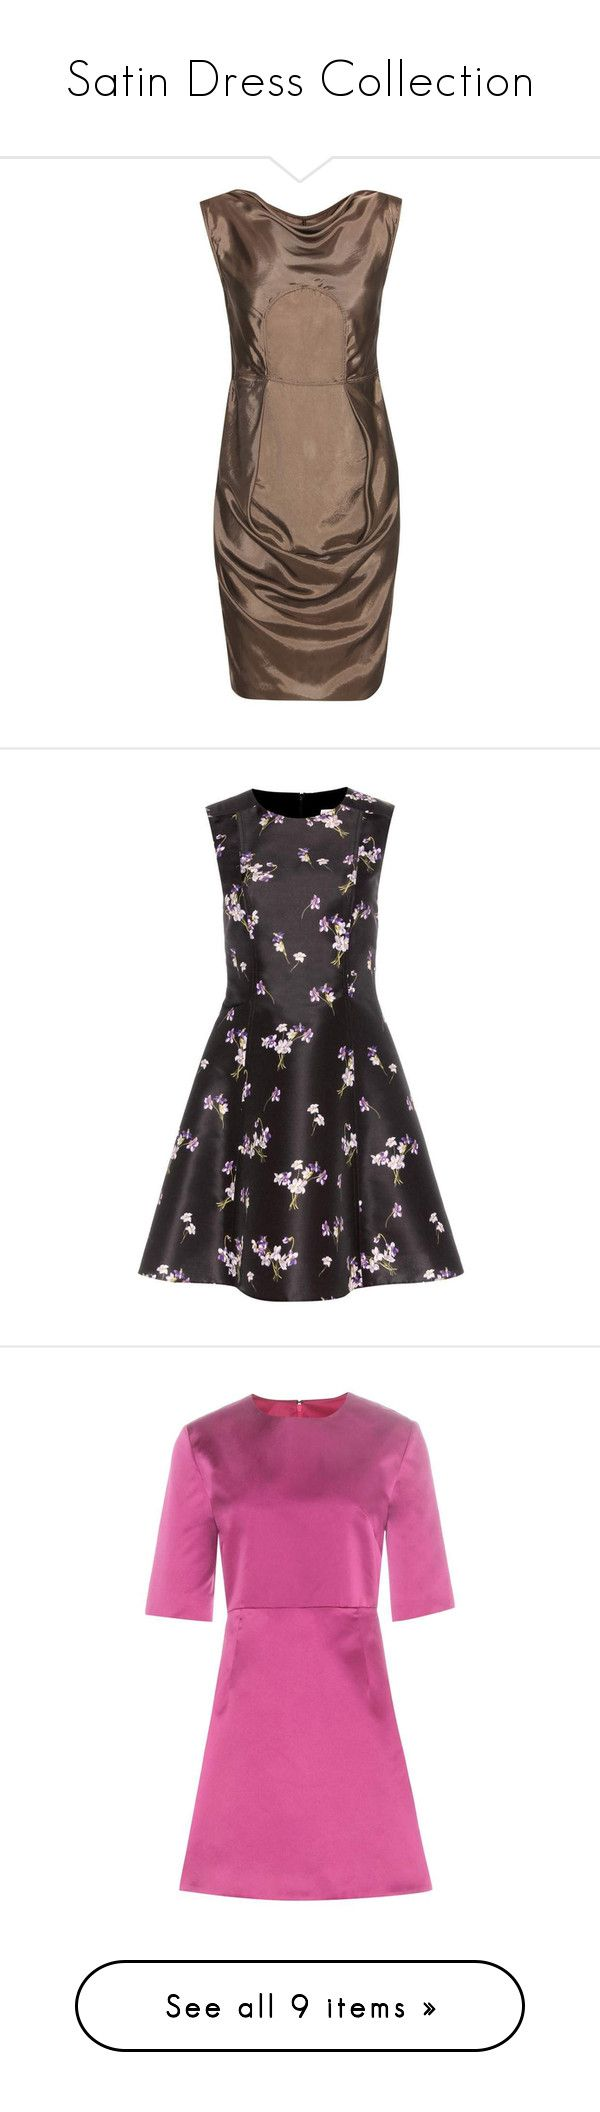 """""""Satin Dress Collection"""" by modalist ❤ liked on Polyvore featuring dresses, gathered dress, shirred dress, rouched dress, panel dress, mini dress, zipper dress, floral day dress, red valentino dress and floral print dress"""